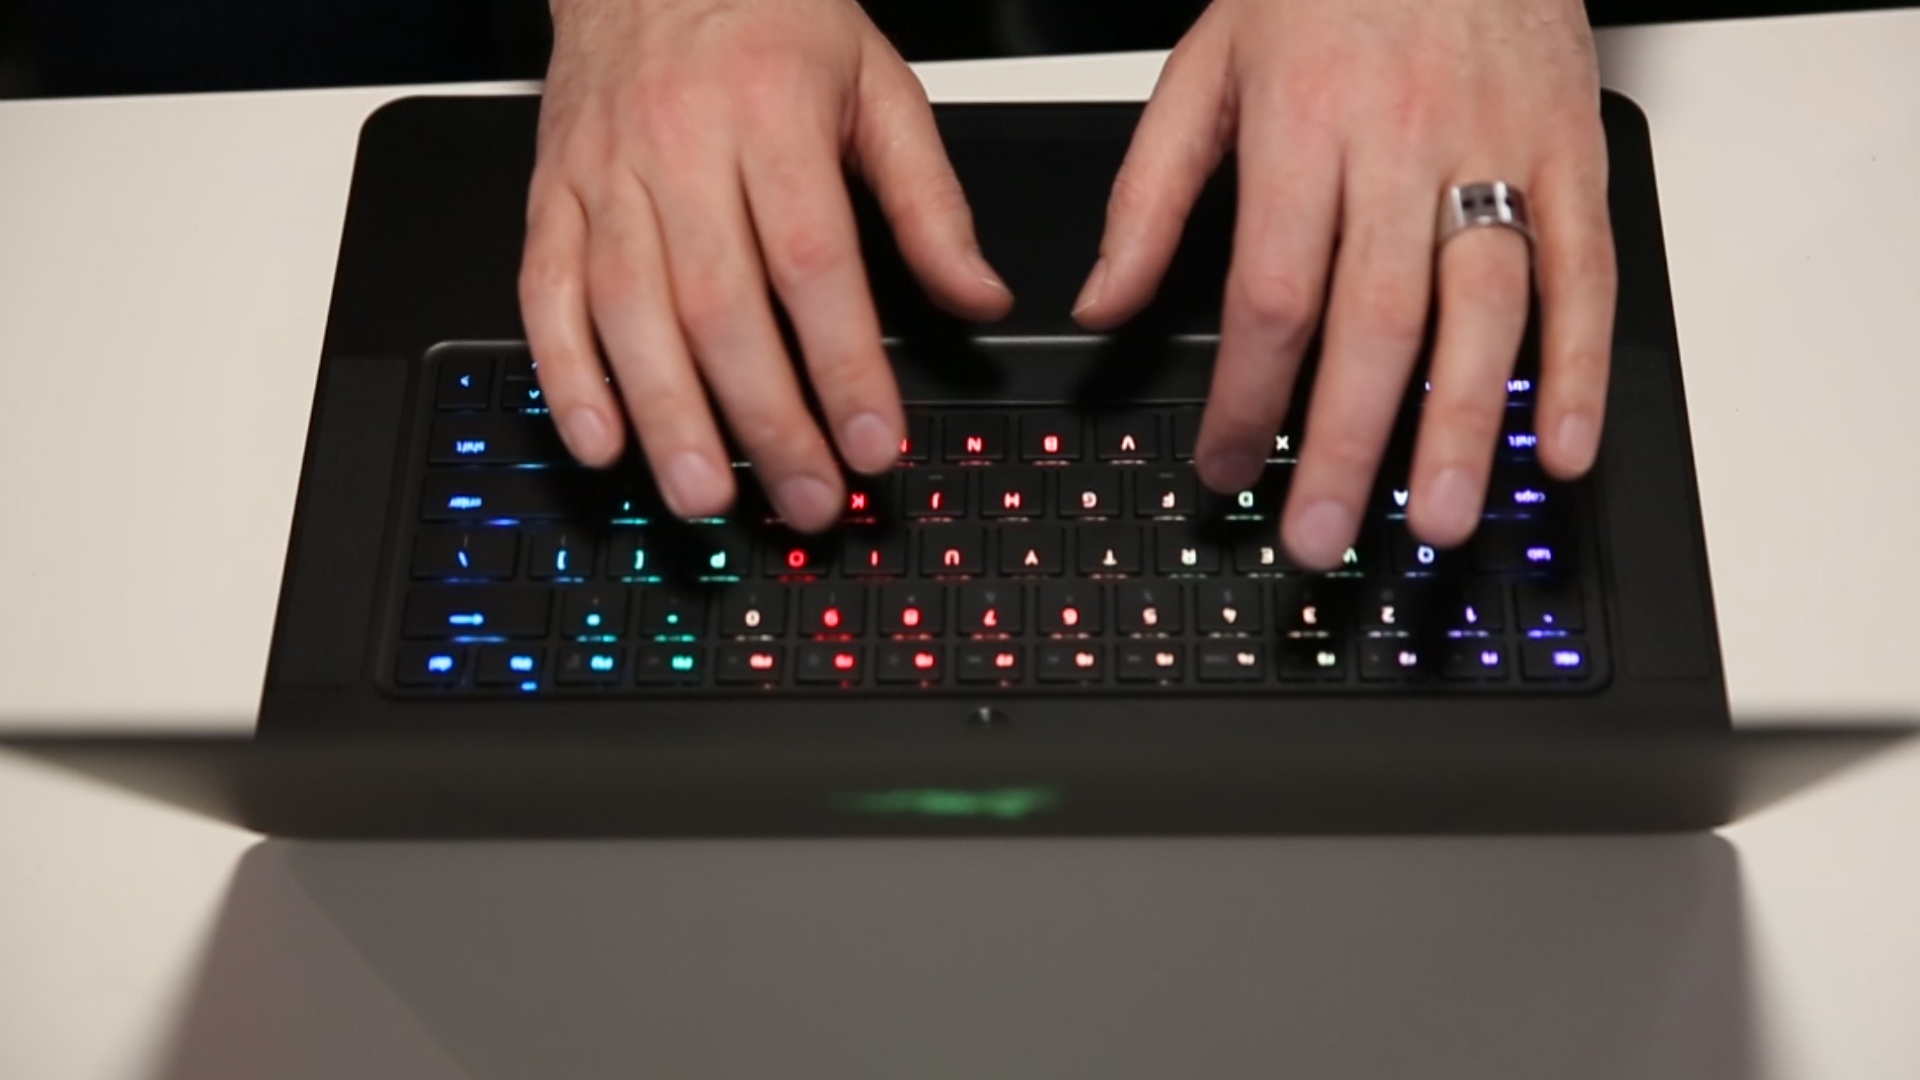 Video: A gaming laptop with a colorful personality